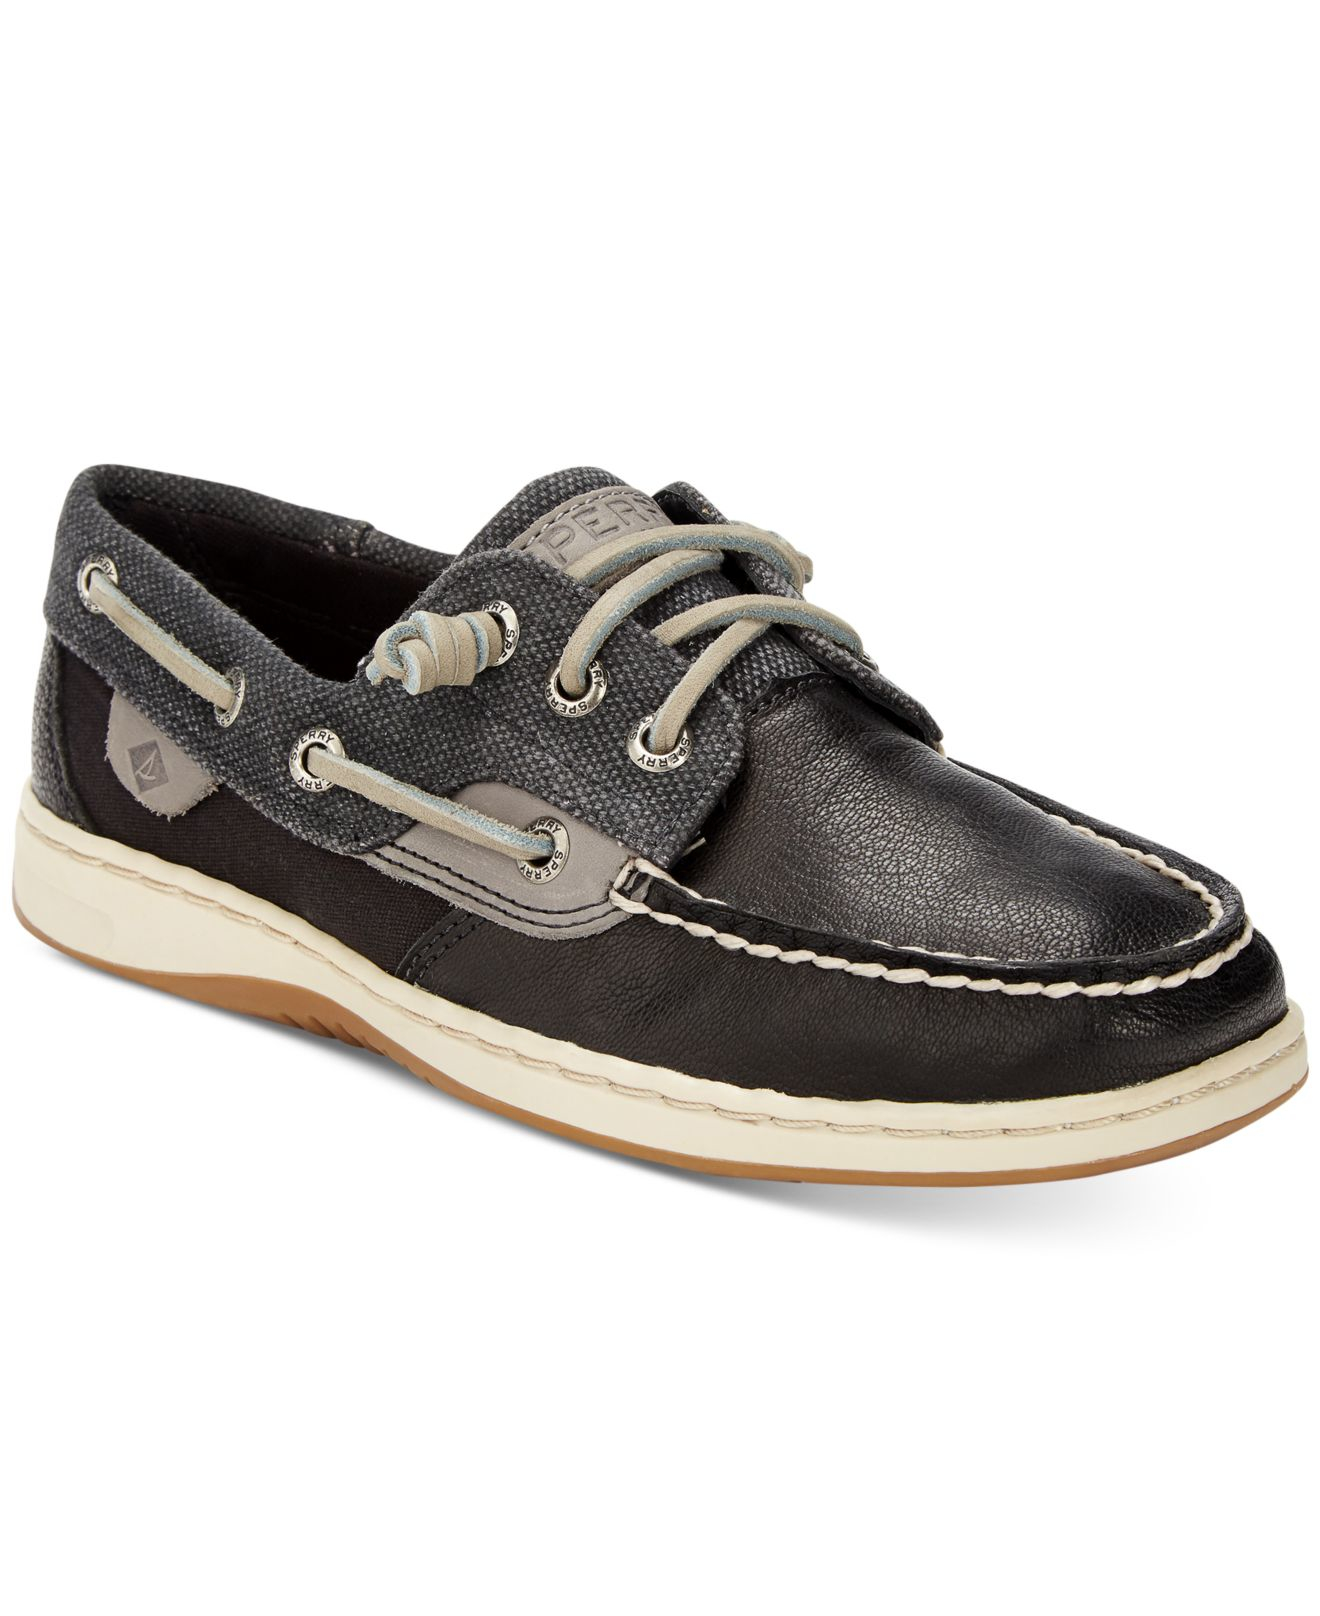 Sperry top sider ivy fish boat shoes in black for men lyst for Best boat shoes for fishing